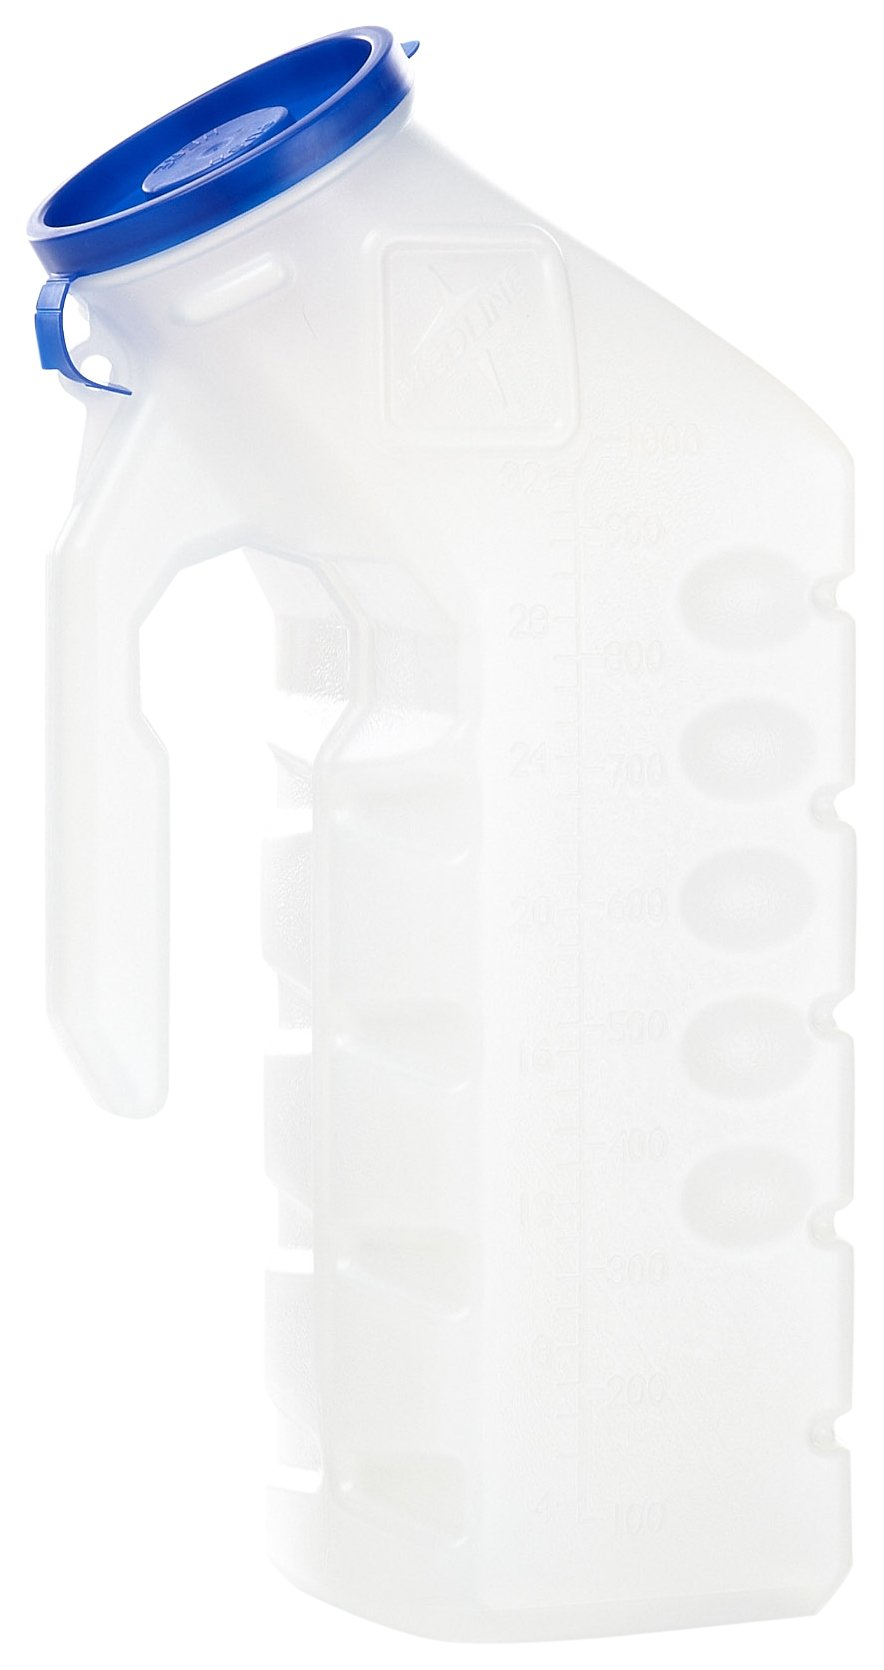 MEDLINE DYND80235SD Urinal with Glow-in-the-Dark Lid